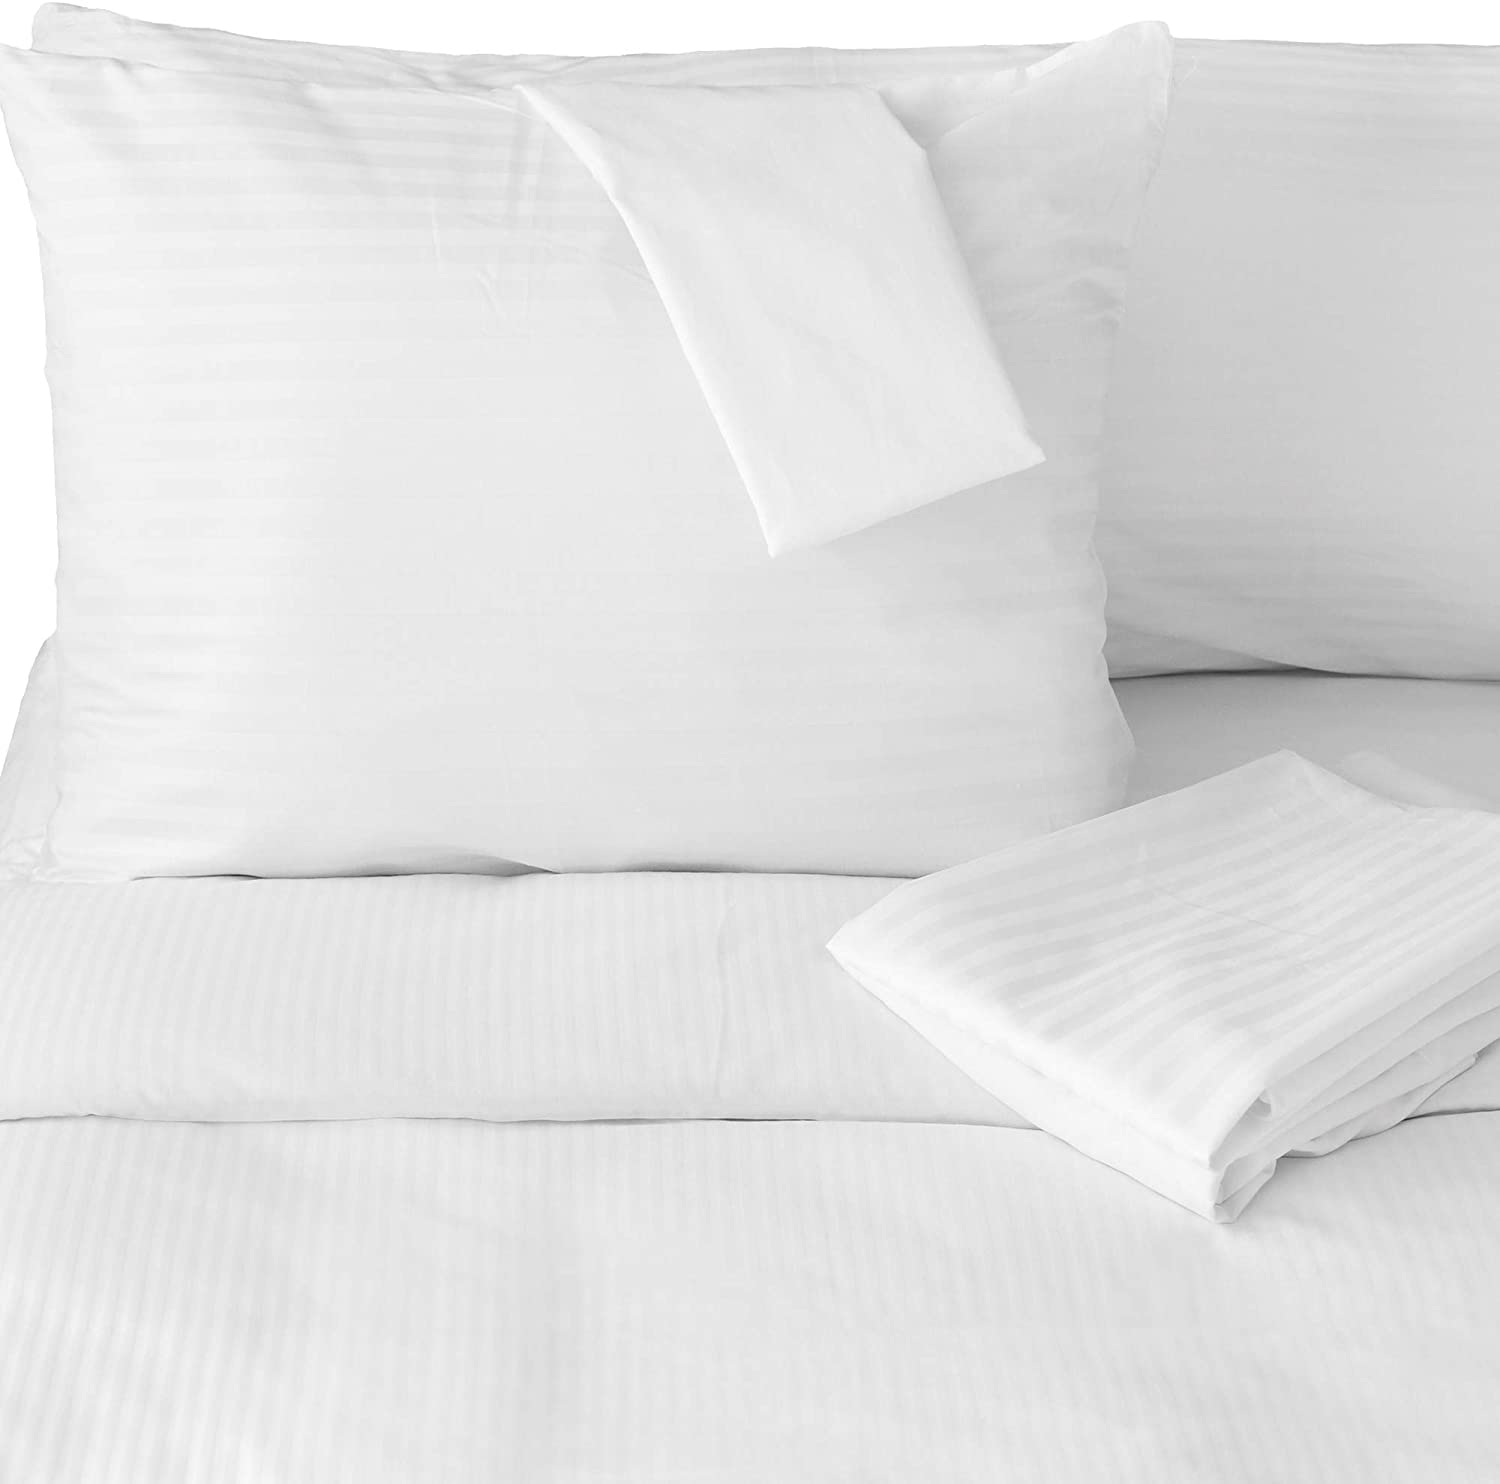 FeelAtHome 100% Cotton Waterproof Zip Pillow Protector Covers (Pack of 4, Standard) - Anti Bed Bug & Dustmite Pillowcase Cover - Hypoallergenic Zippered Pillow Encasement Pillow Case